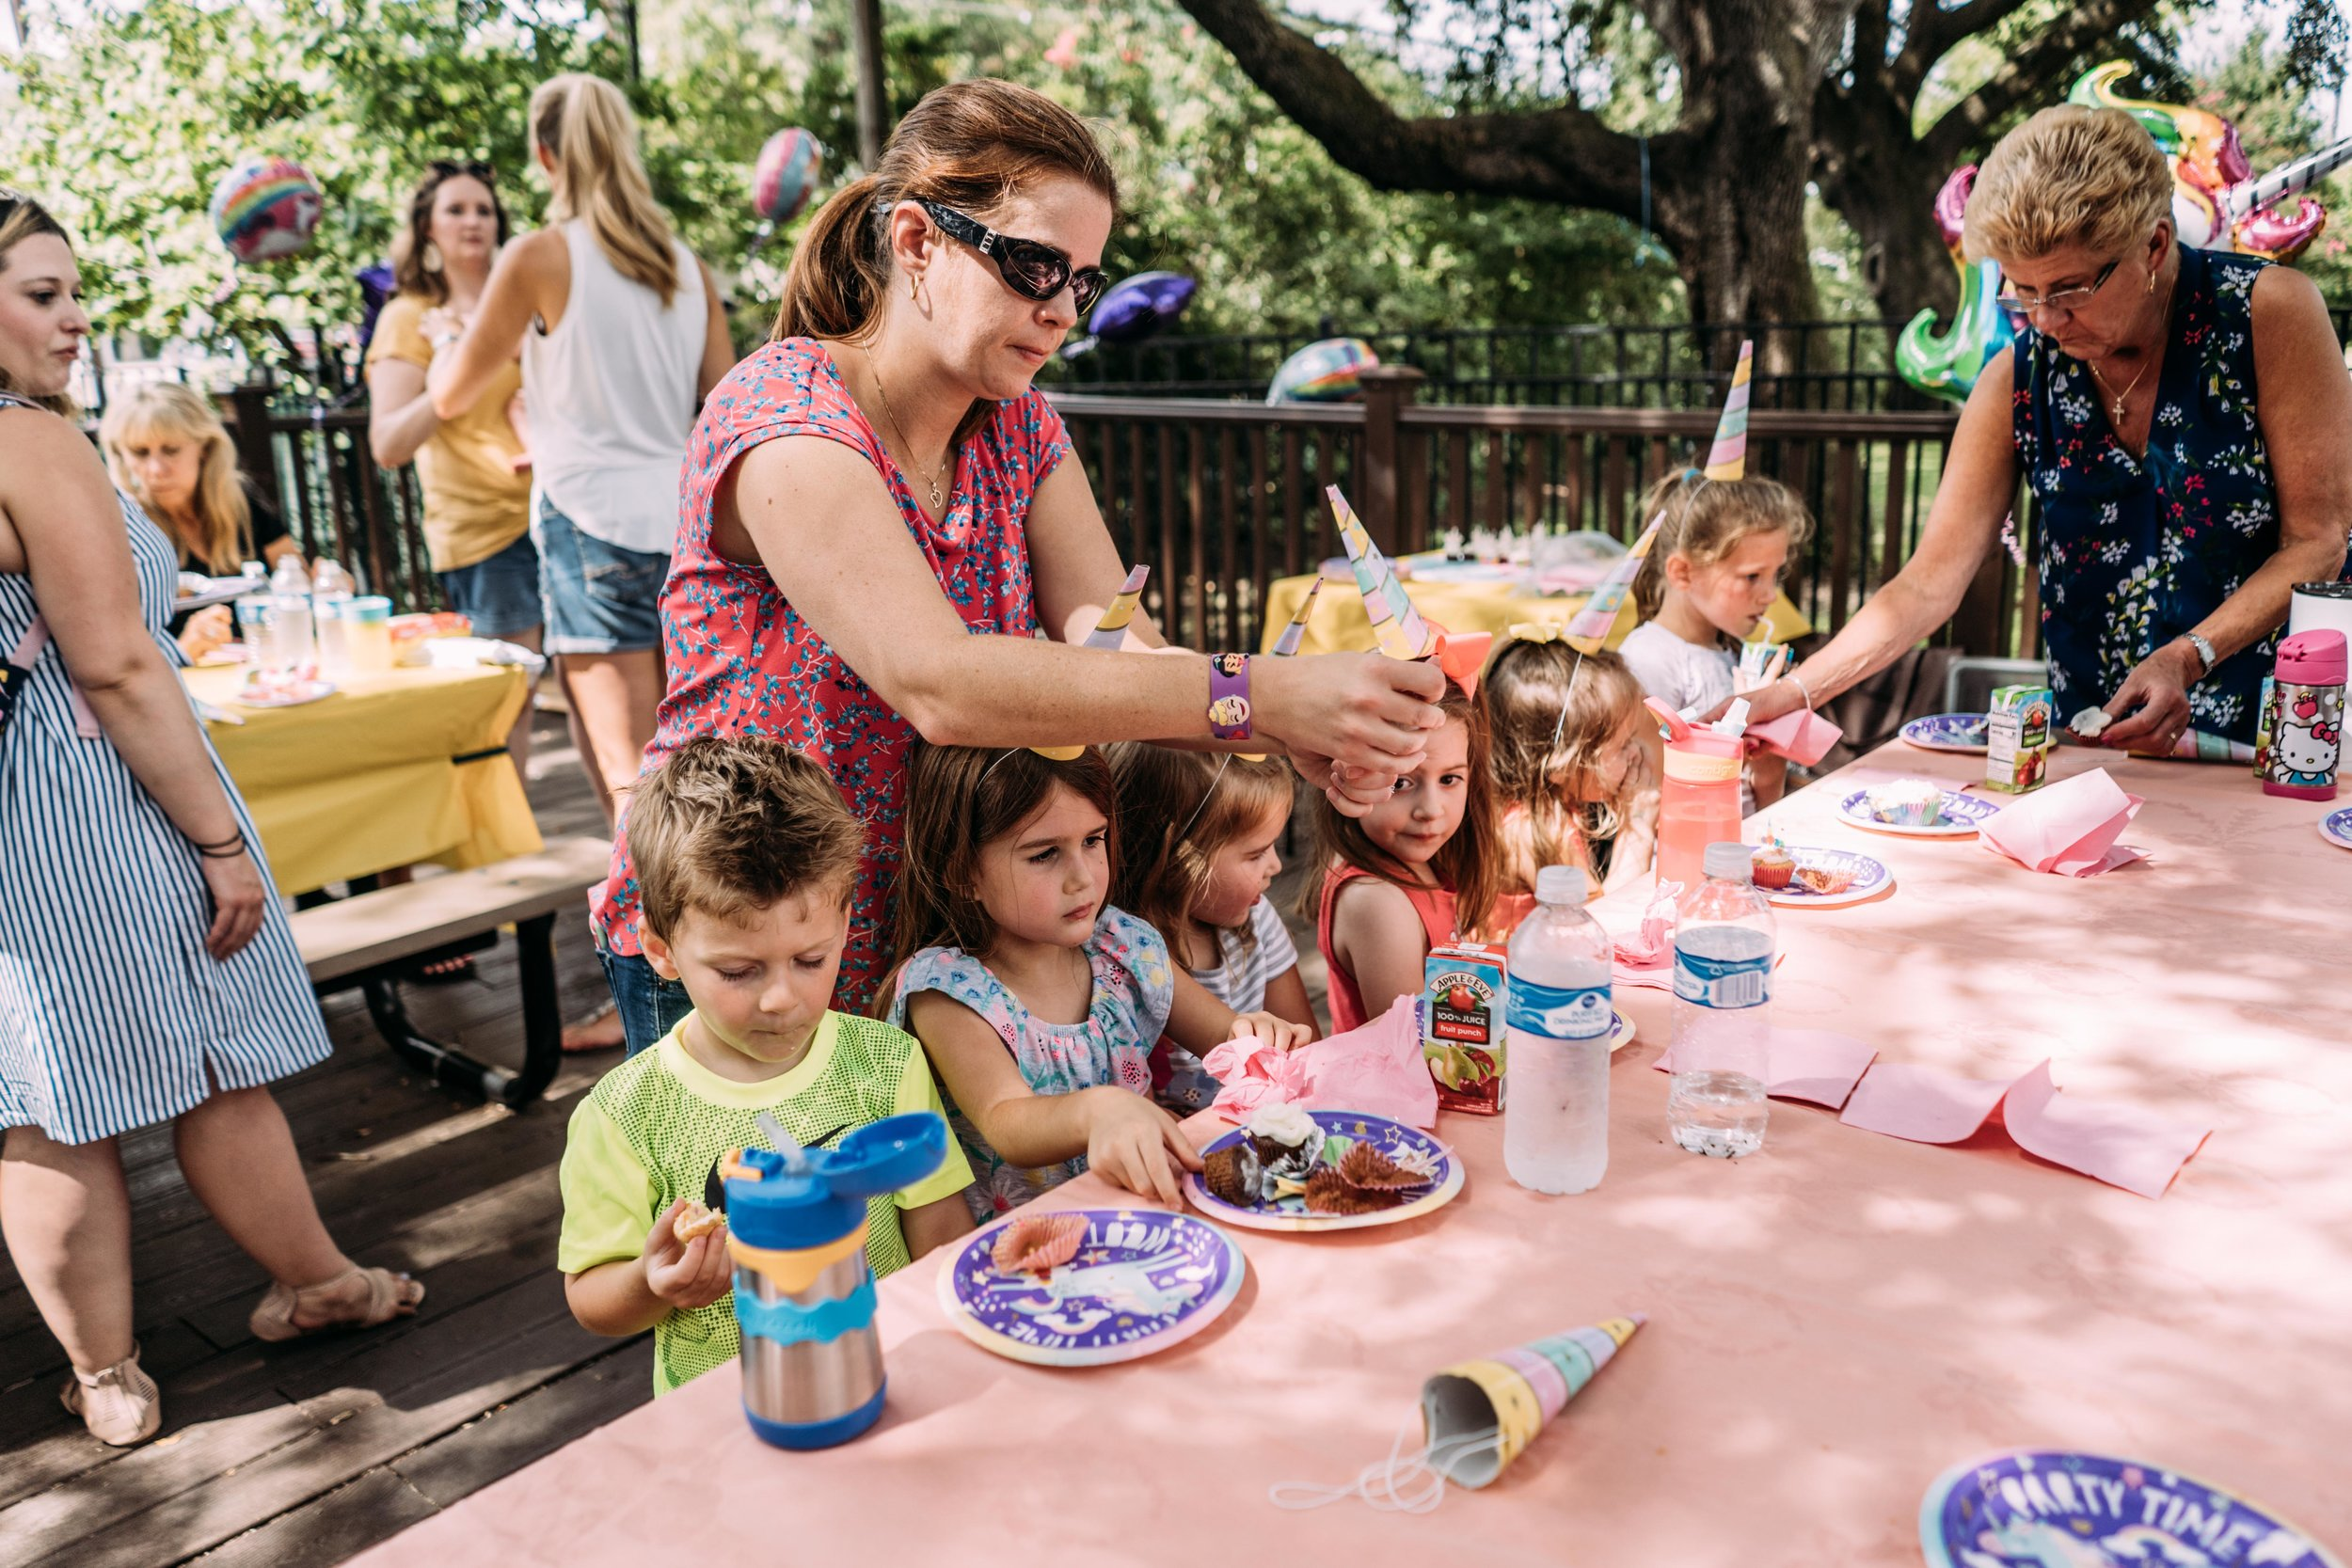 birthday party at the park-31.jpg